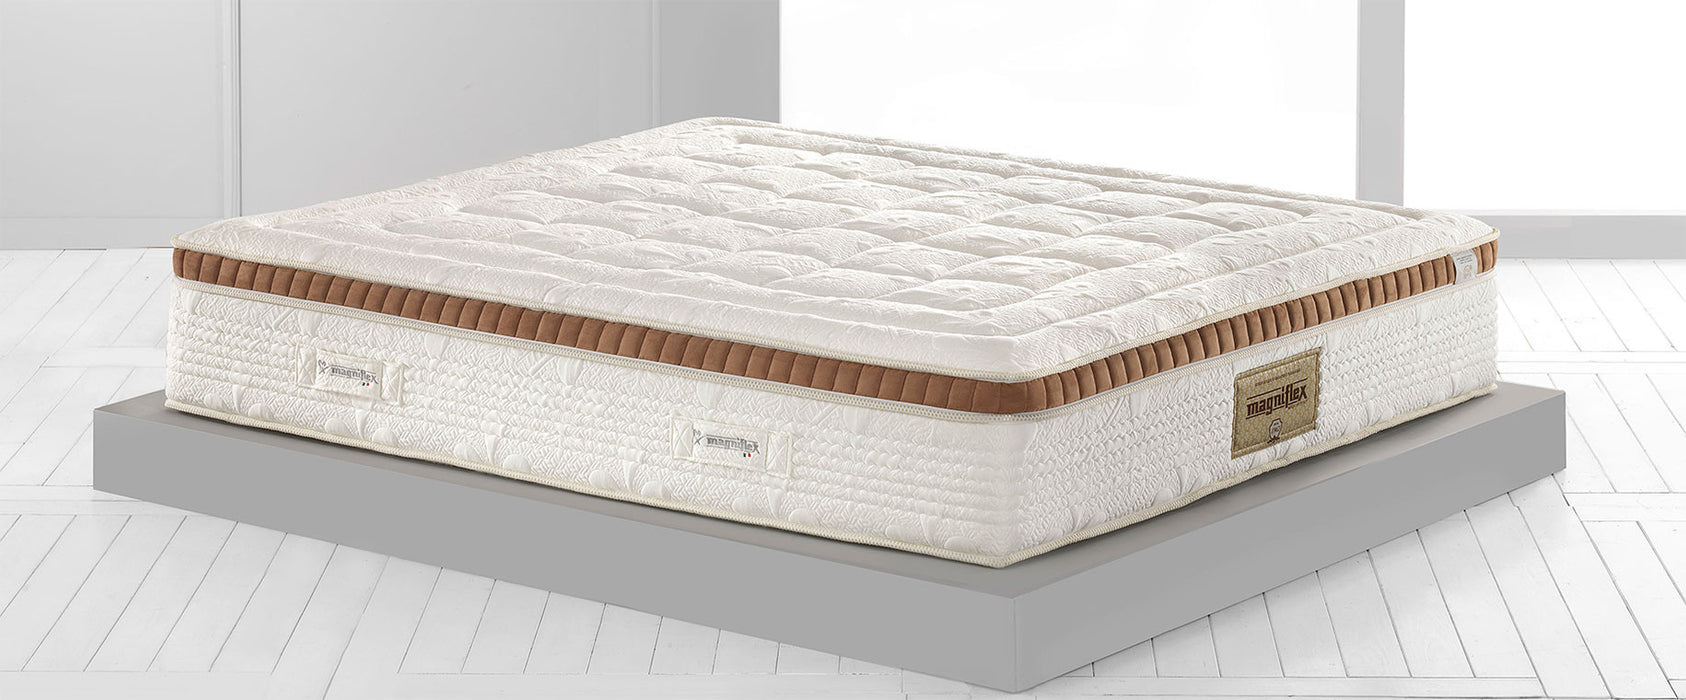 Buy Magniflex Luxury Mattresses Armonia with Memory form -Online Happymonk India